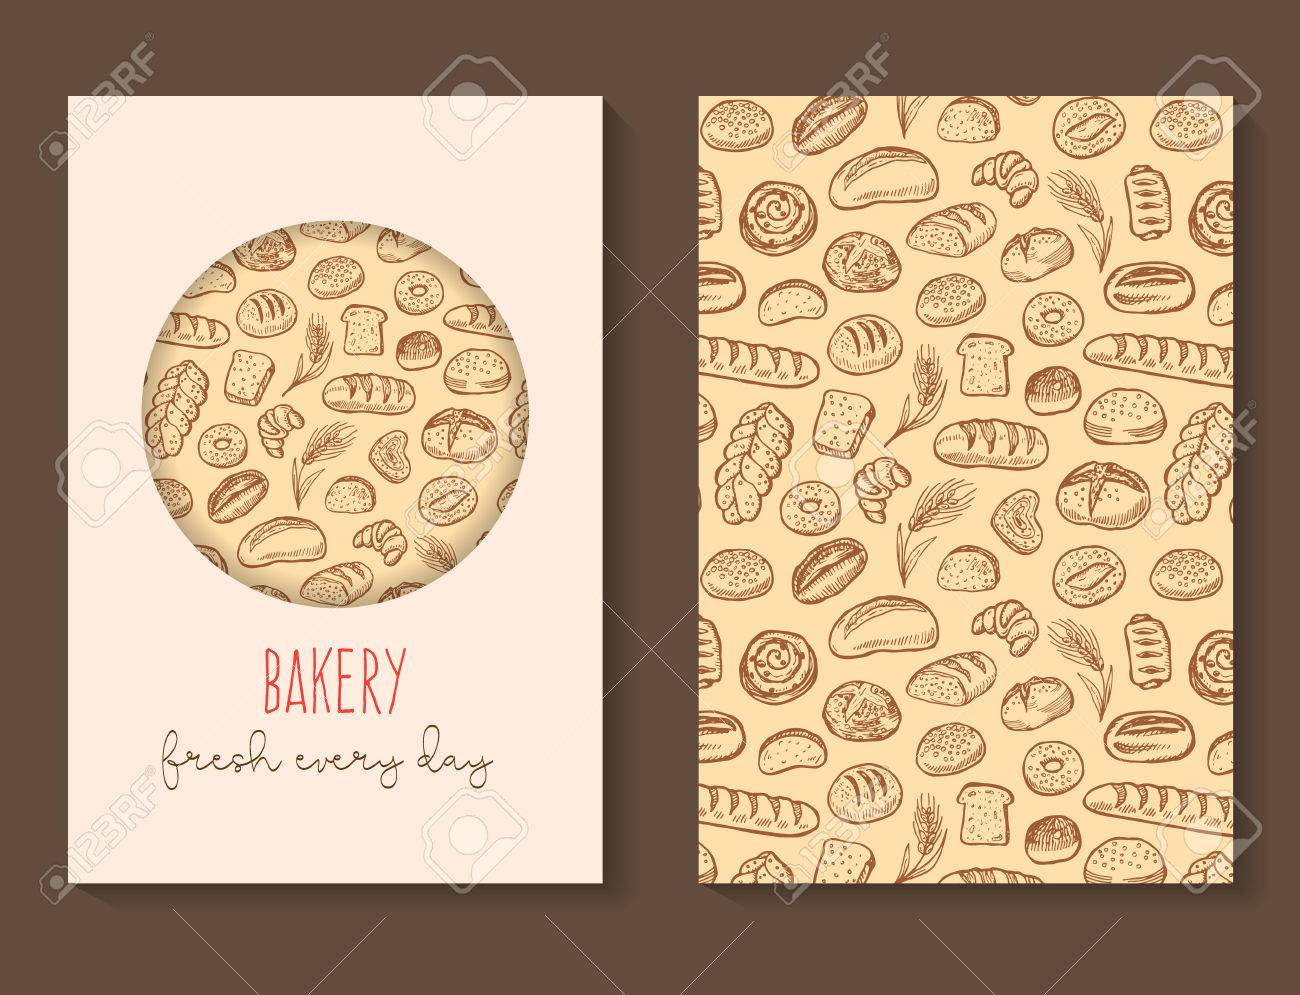 Bakery doodles vector brochure business card template royalty free bakery doodles vector brochure business card template stock vector 55687769 reheart